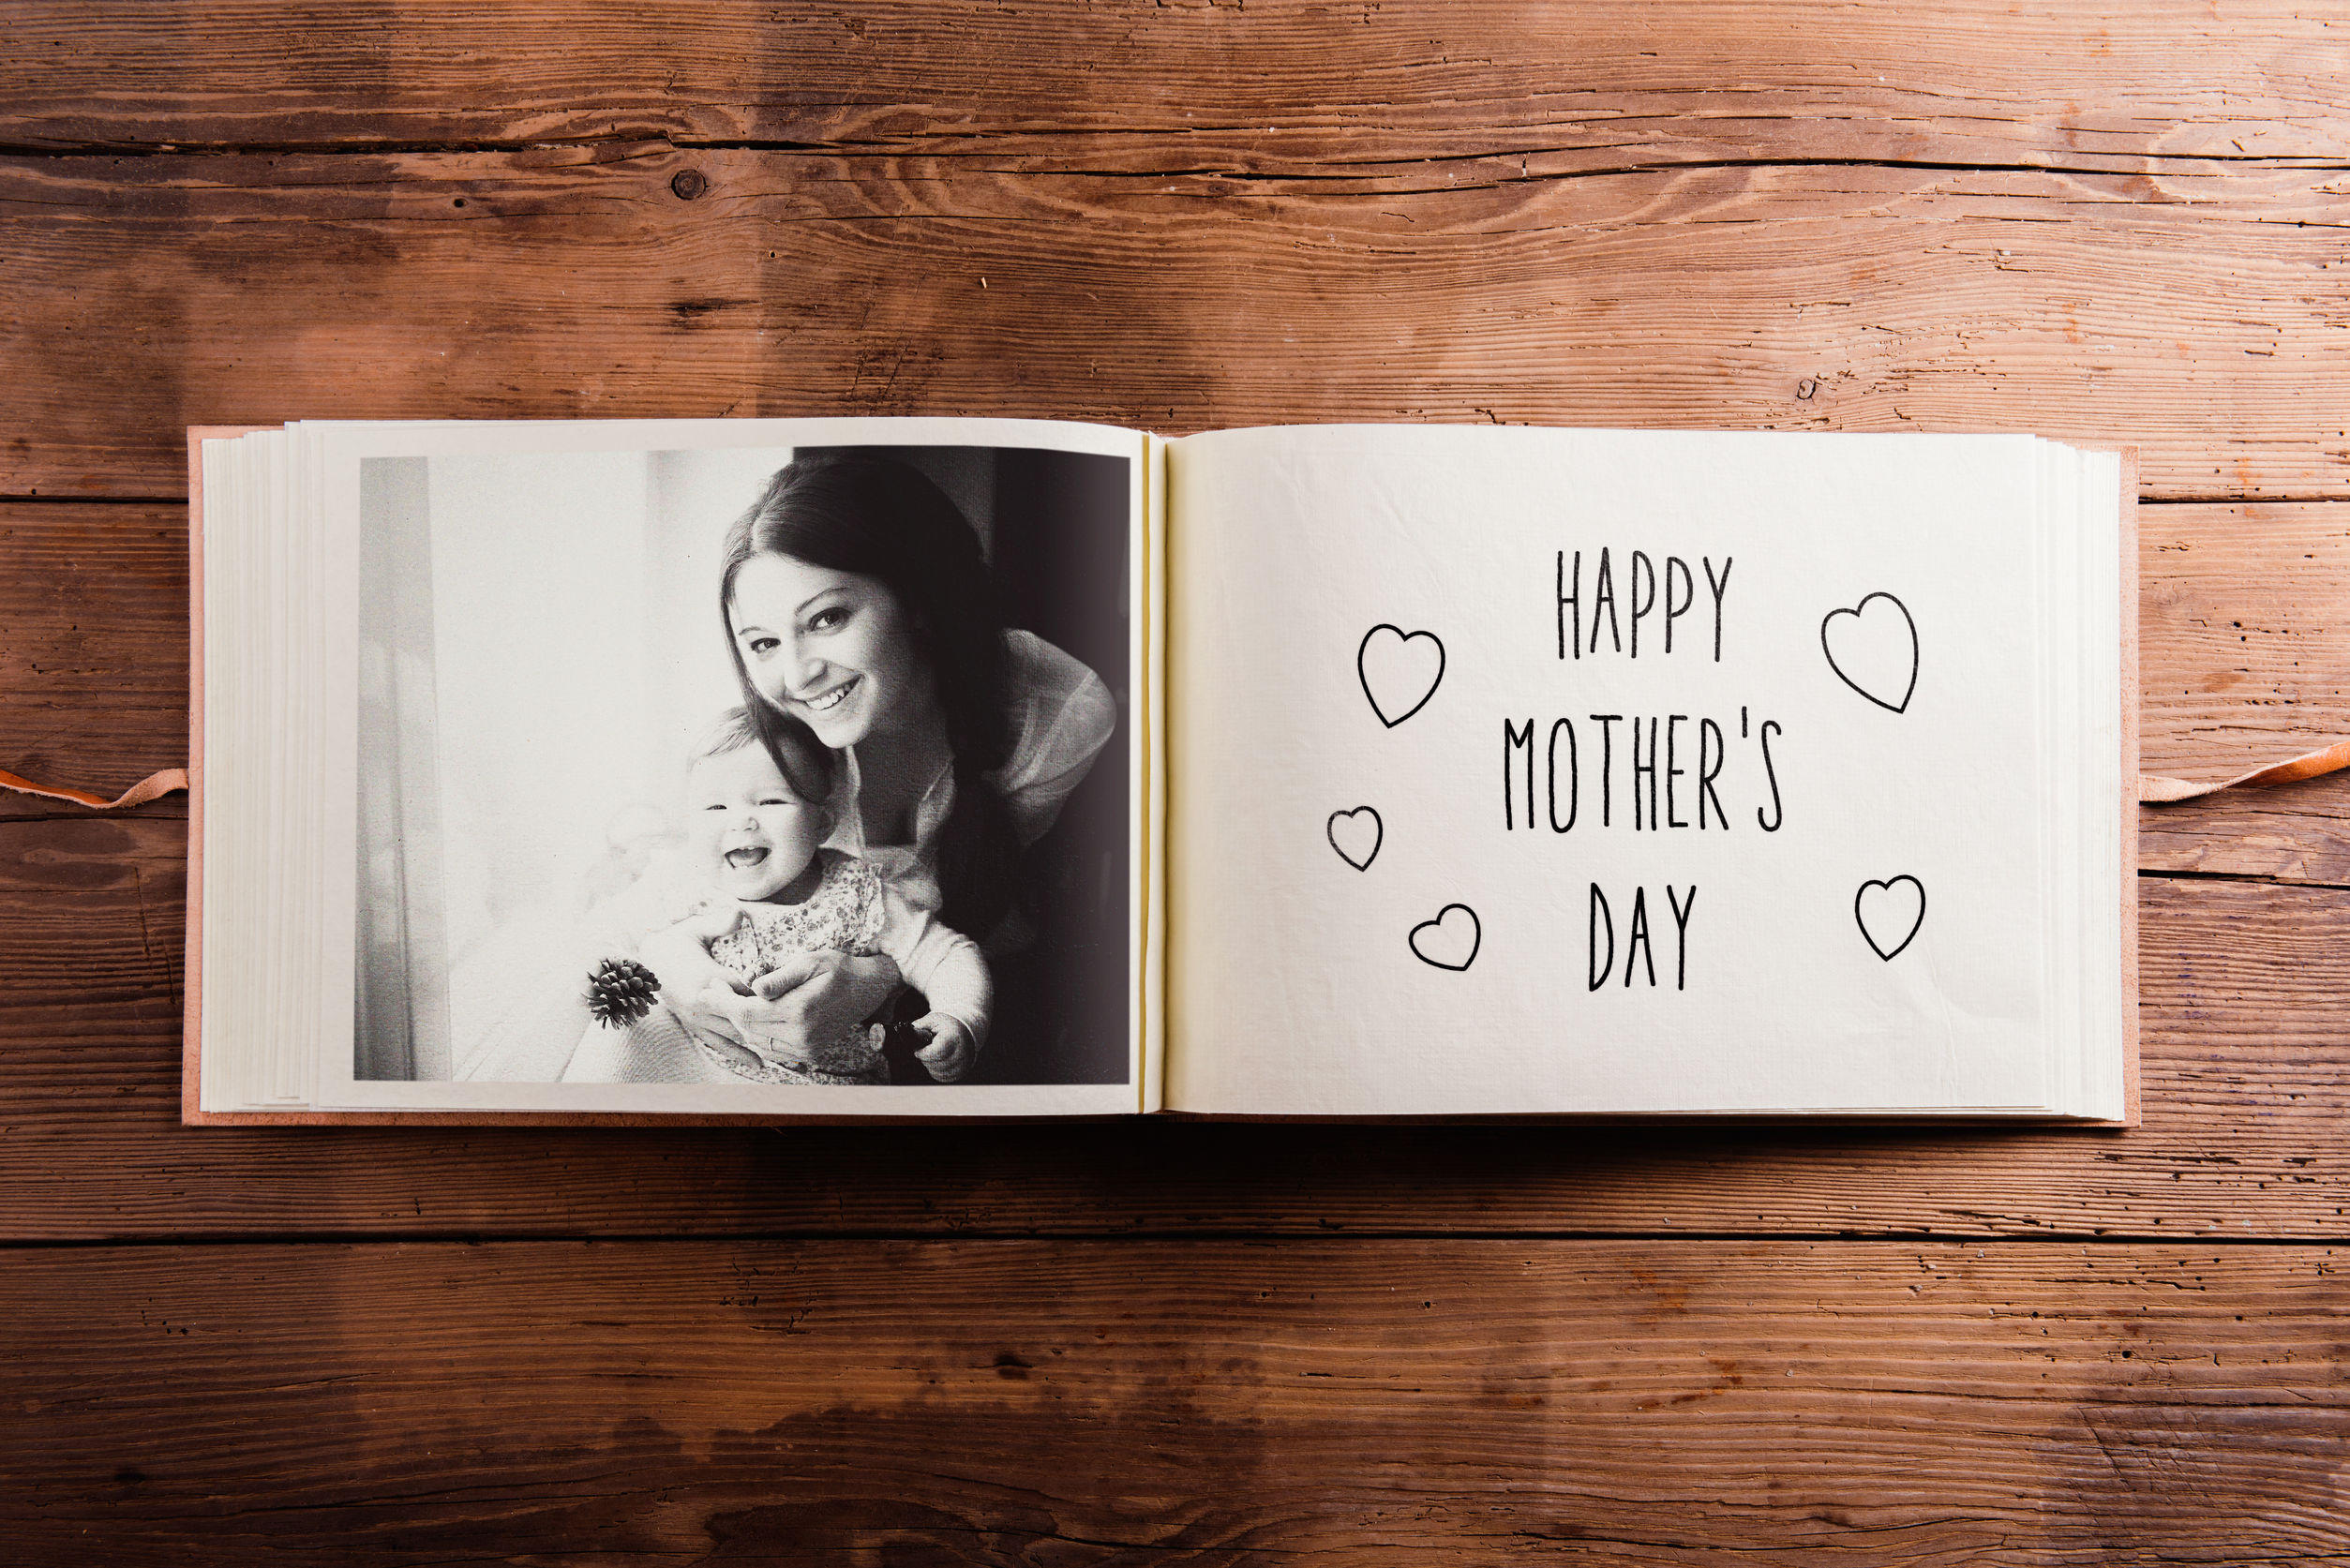 Spend your Mother's Day Giving Back | News and Events ...